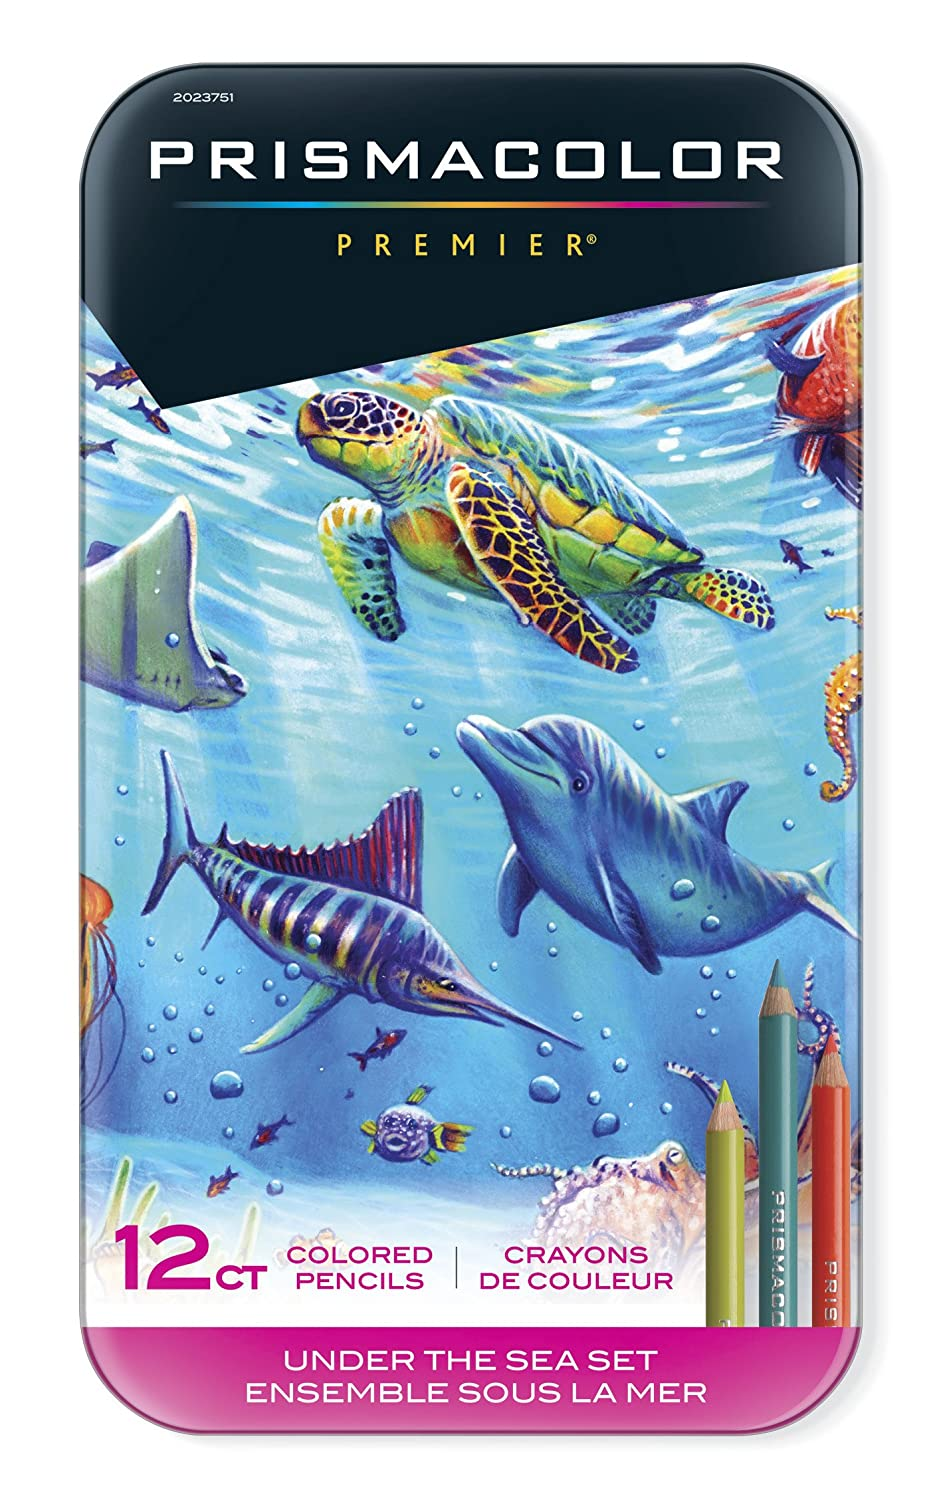 12 Lapices De Colores Prismacolor, Under The Sea (xmp (nztv)